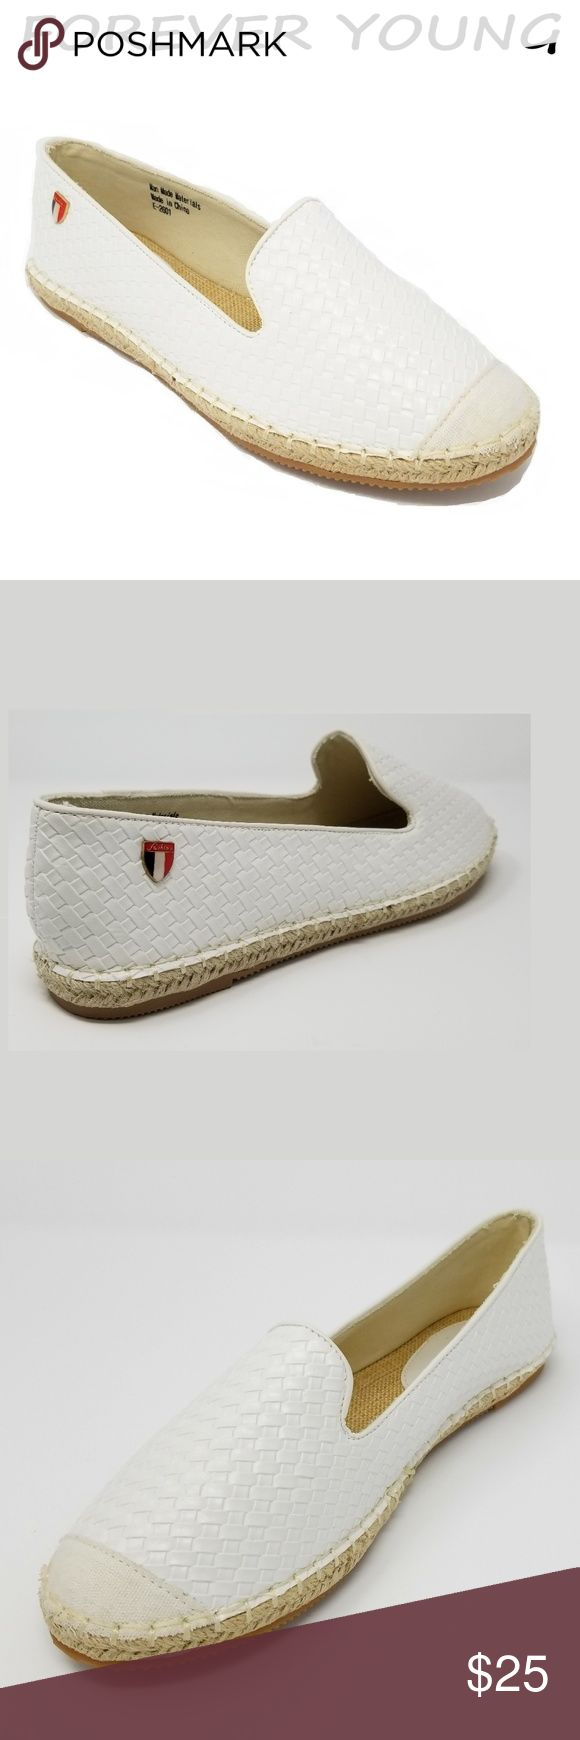 """Women Wicker Espadrille Flats, E-2601, White Brand new Forever Young super popular stitched espadrille smocking slippers with basket weave design. Extra soft insoles. Textured rubber outer sole for traction. Cute emblem in the back. 100% man made with PU vegan leather. Measurements: sizes 6 through 8 are true to size. Sizes 8.5 - 11 run small. Standard 3 inch width. Size 8 measures 9.5 inches, sz 8.5 = 9 3/4"""", sz 9 = 10"""", sz 10 = 10.5"""", size 11 fits a true size 9.5 wearer. A true statement…"""